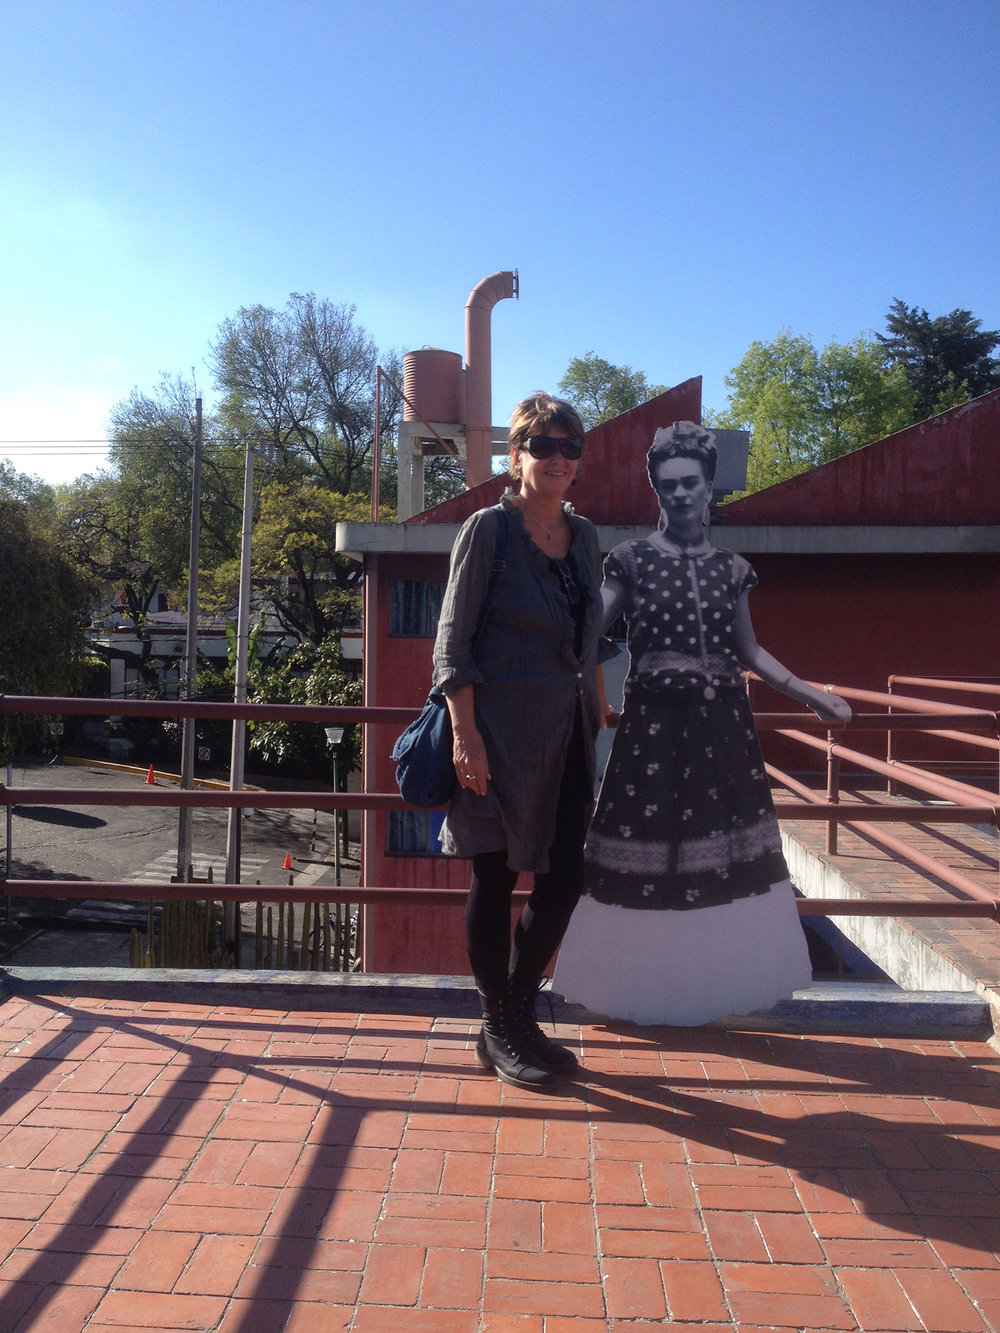 Standing next to petite Frida on her rooftop.